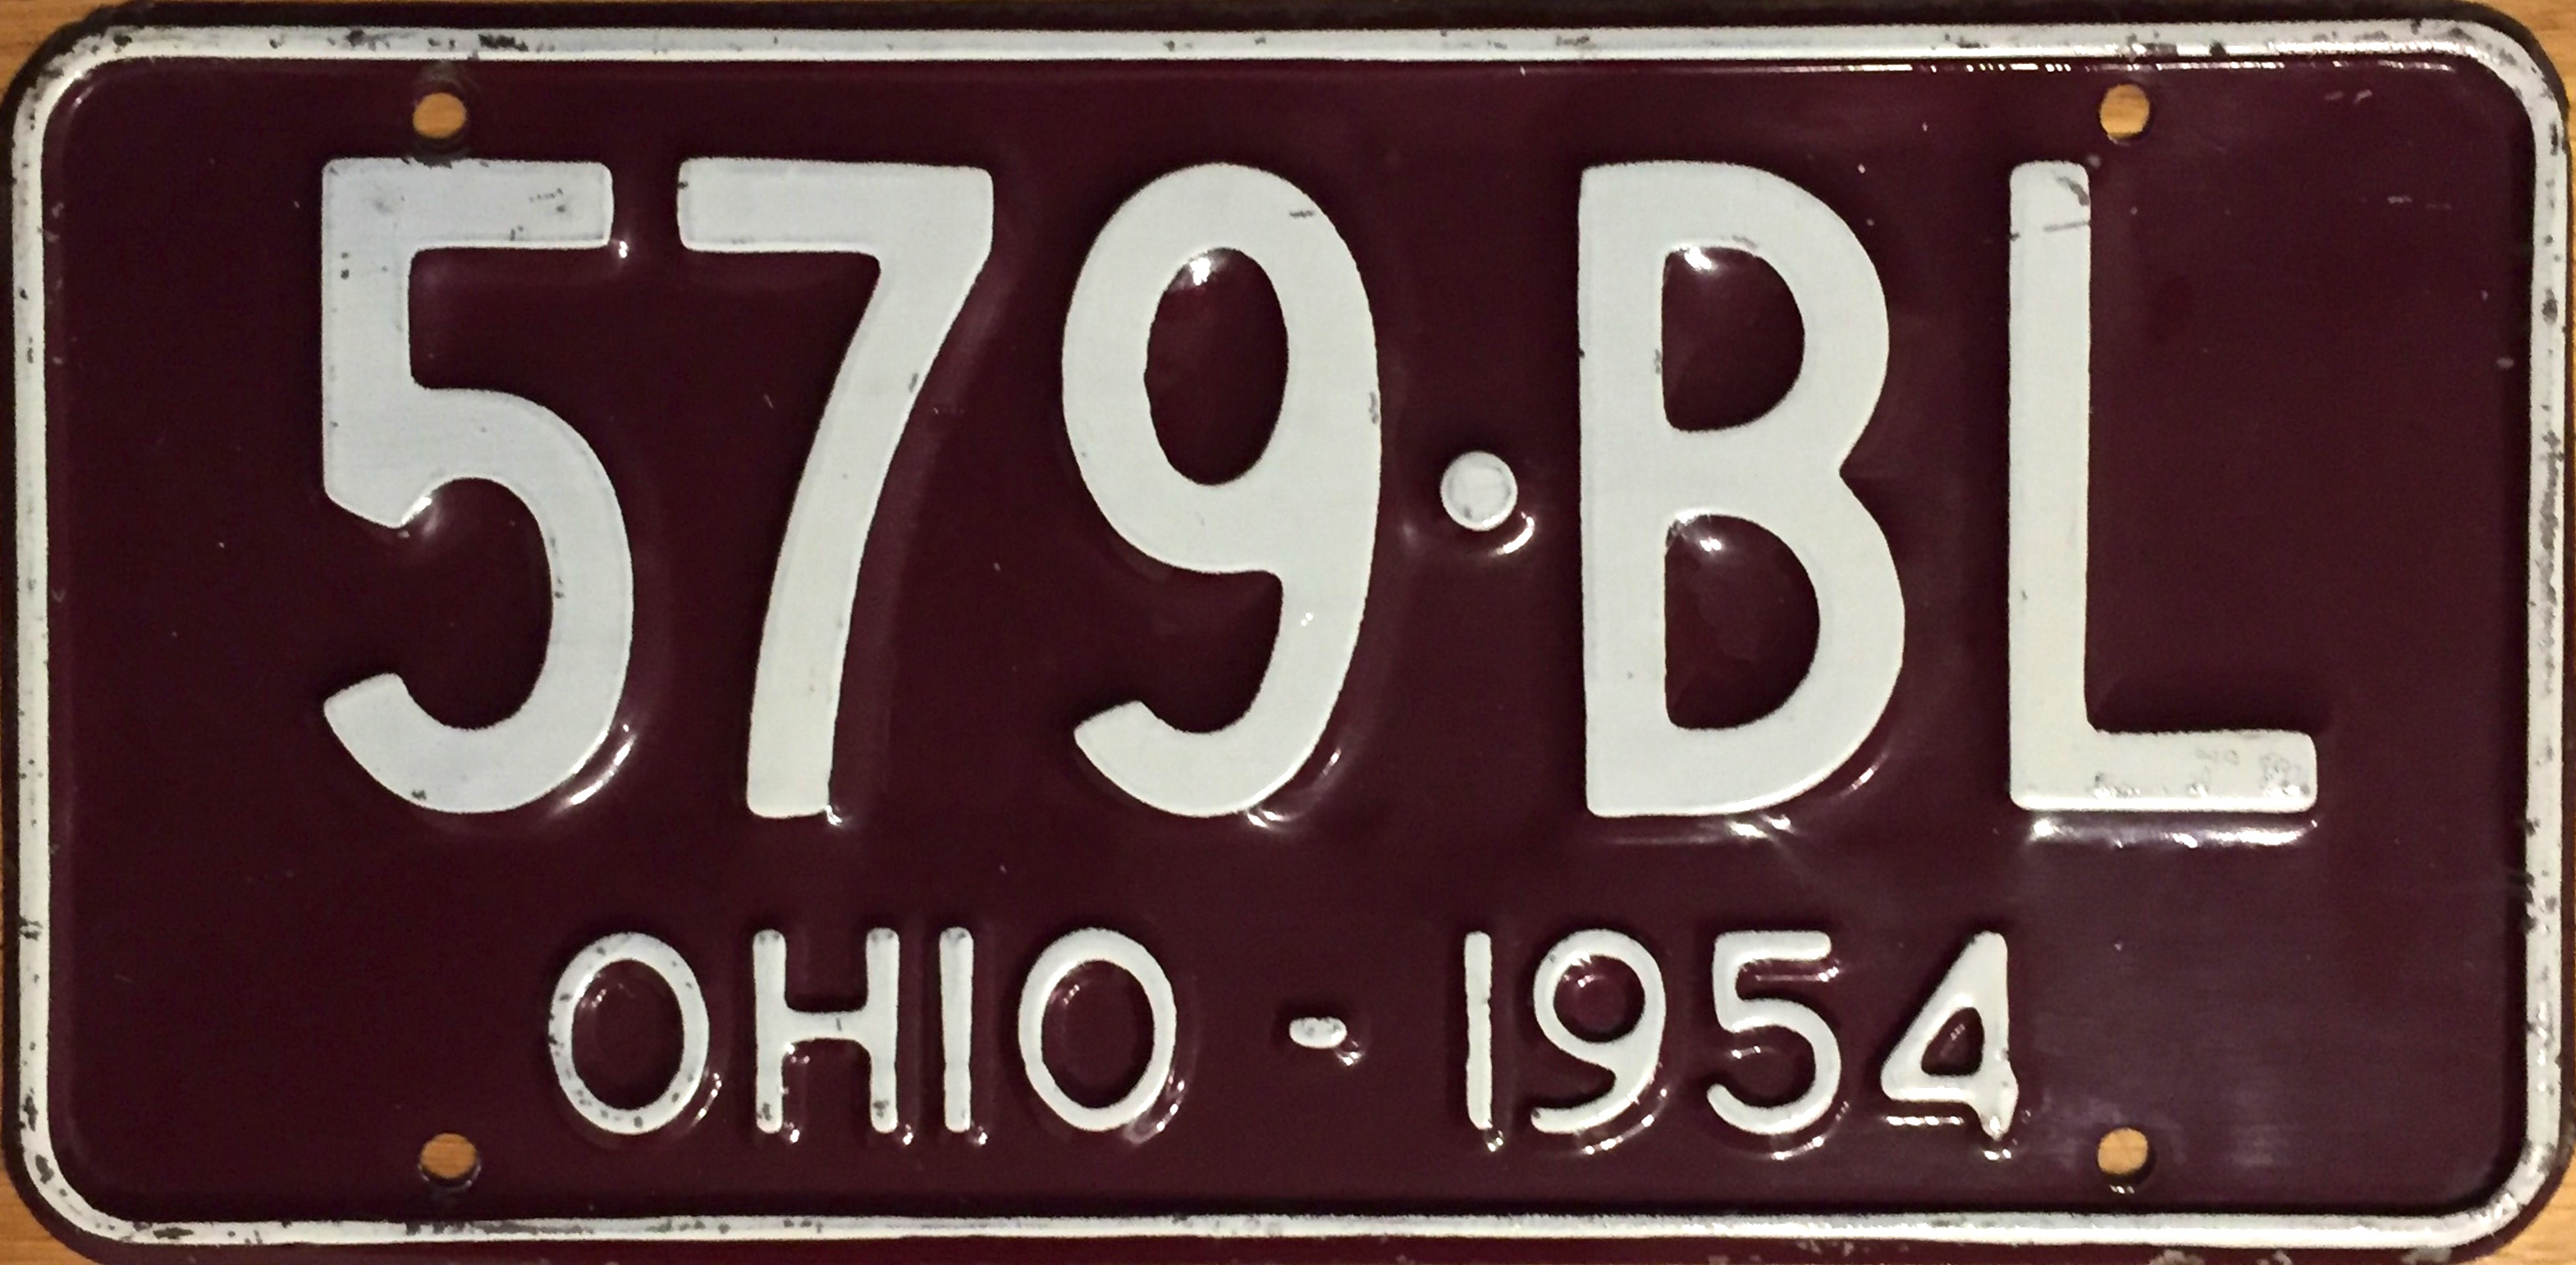 File:1954 Ohio license plate.JPG - Wikimedia Commons